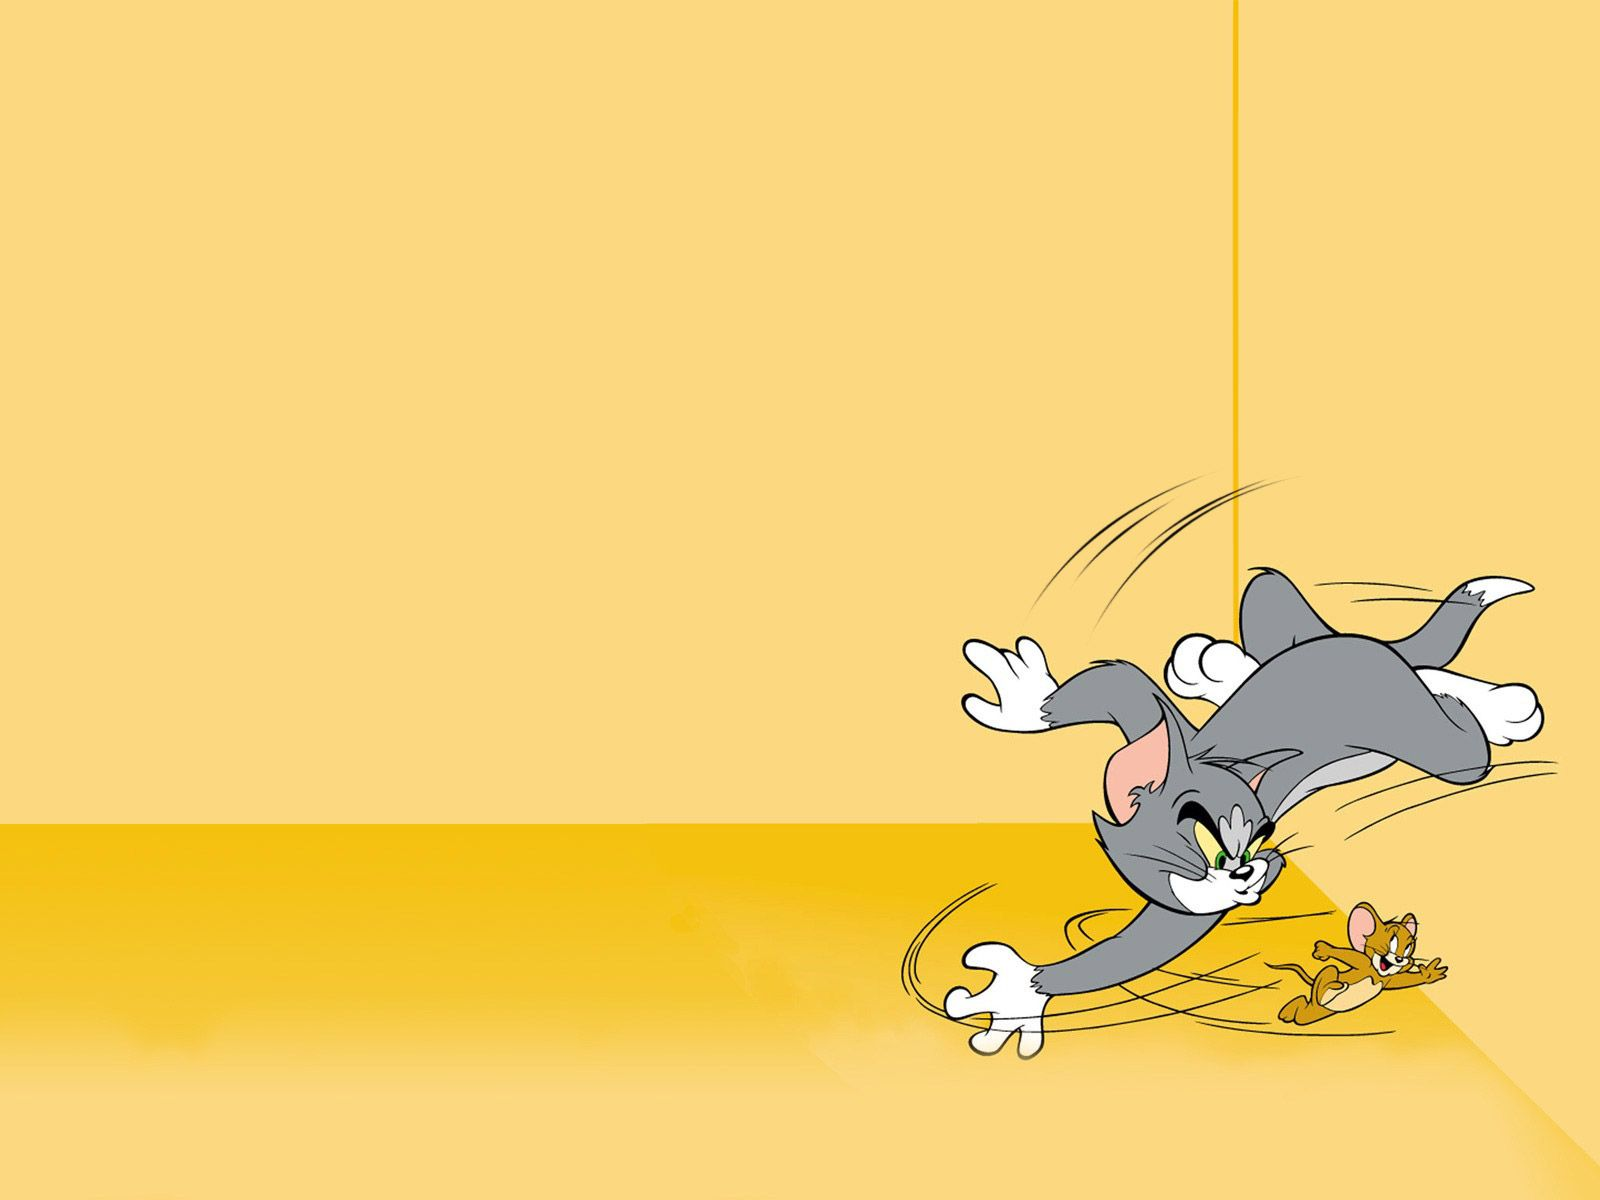 tom jerry cartoon wallpaper tom and jerry cartoon videos wallpapers tom and jerry cartoon wallpapers for desktop tom and jerry cartoon wallpape